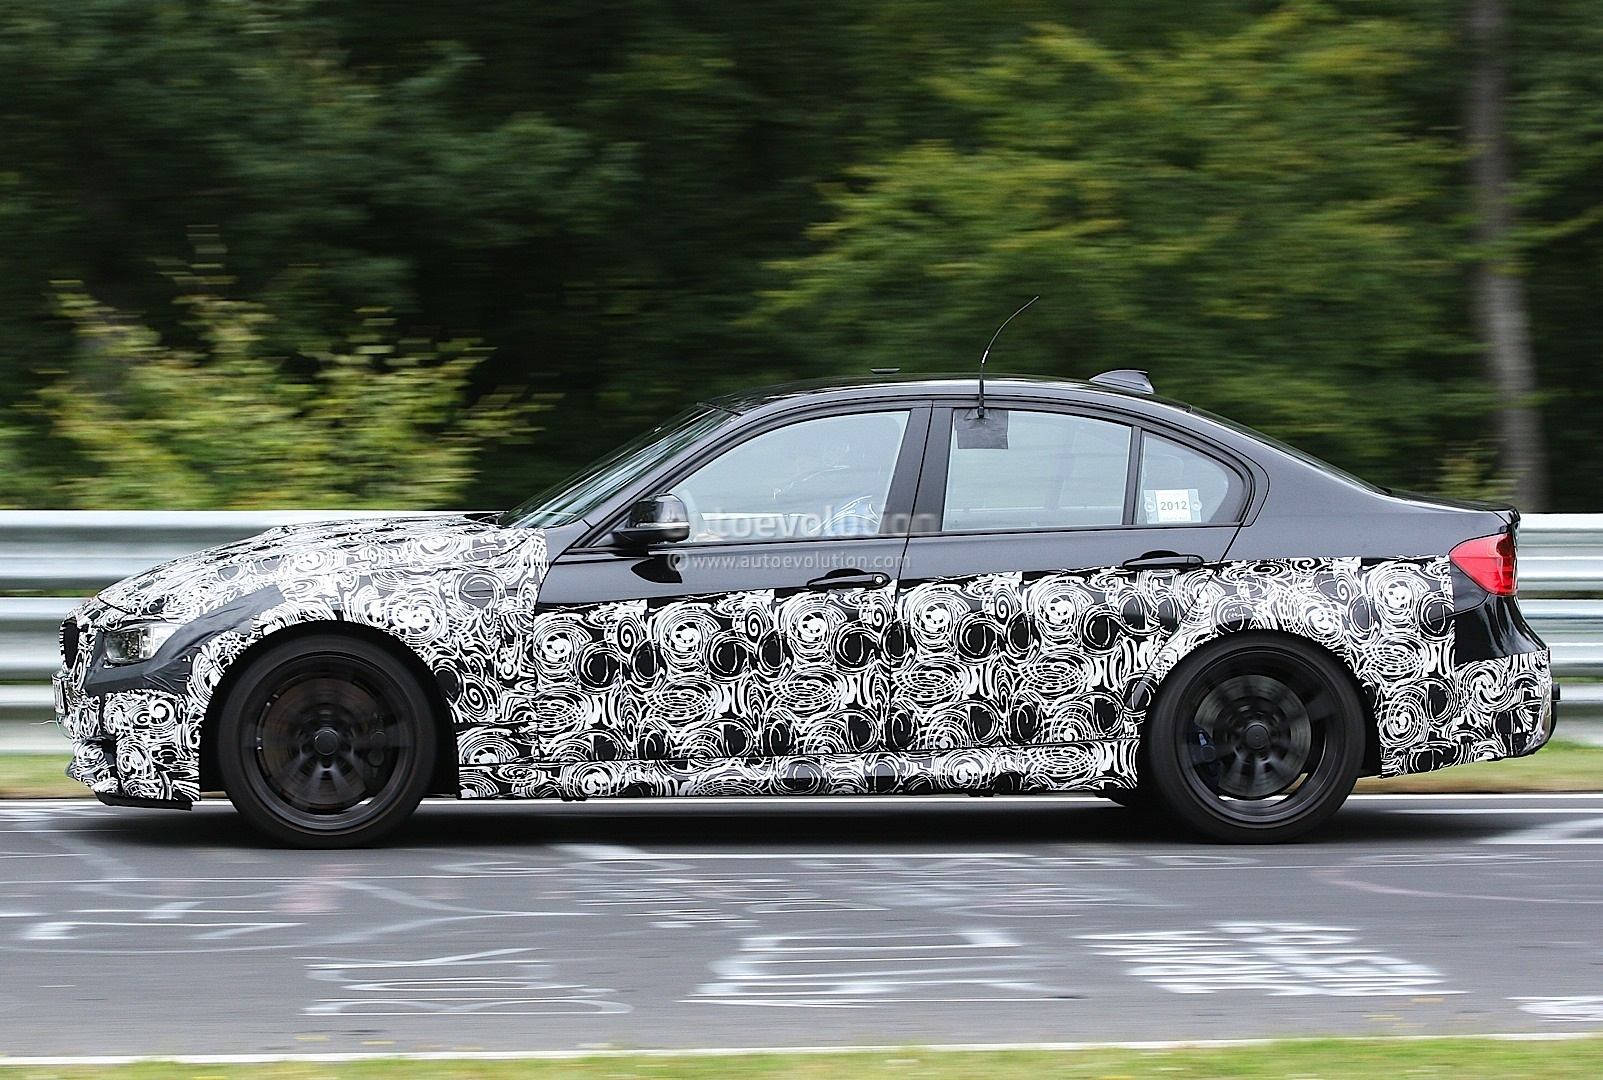 Spyshots: F80 BMW M3 Sheds Camo, Takes on 'Ring ...